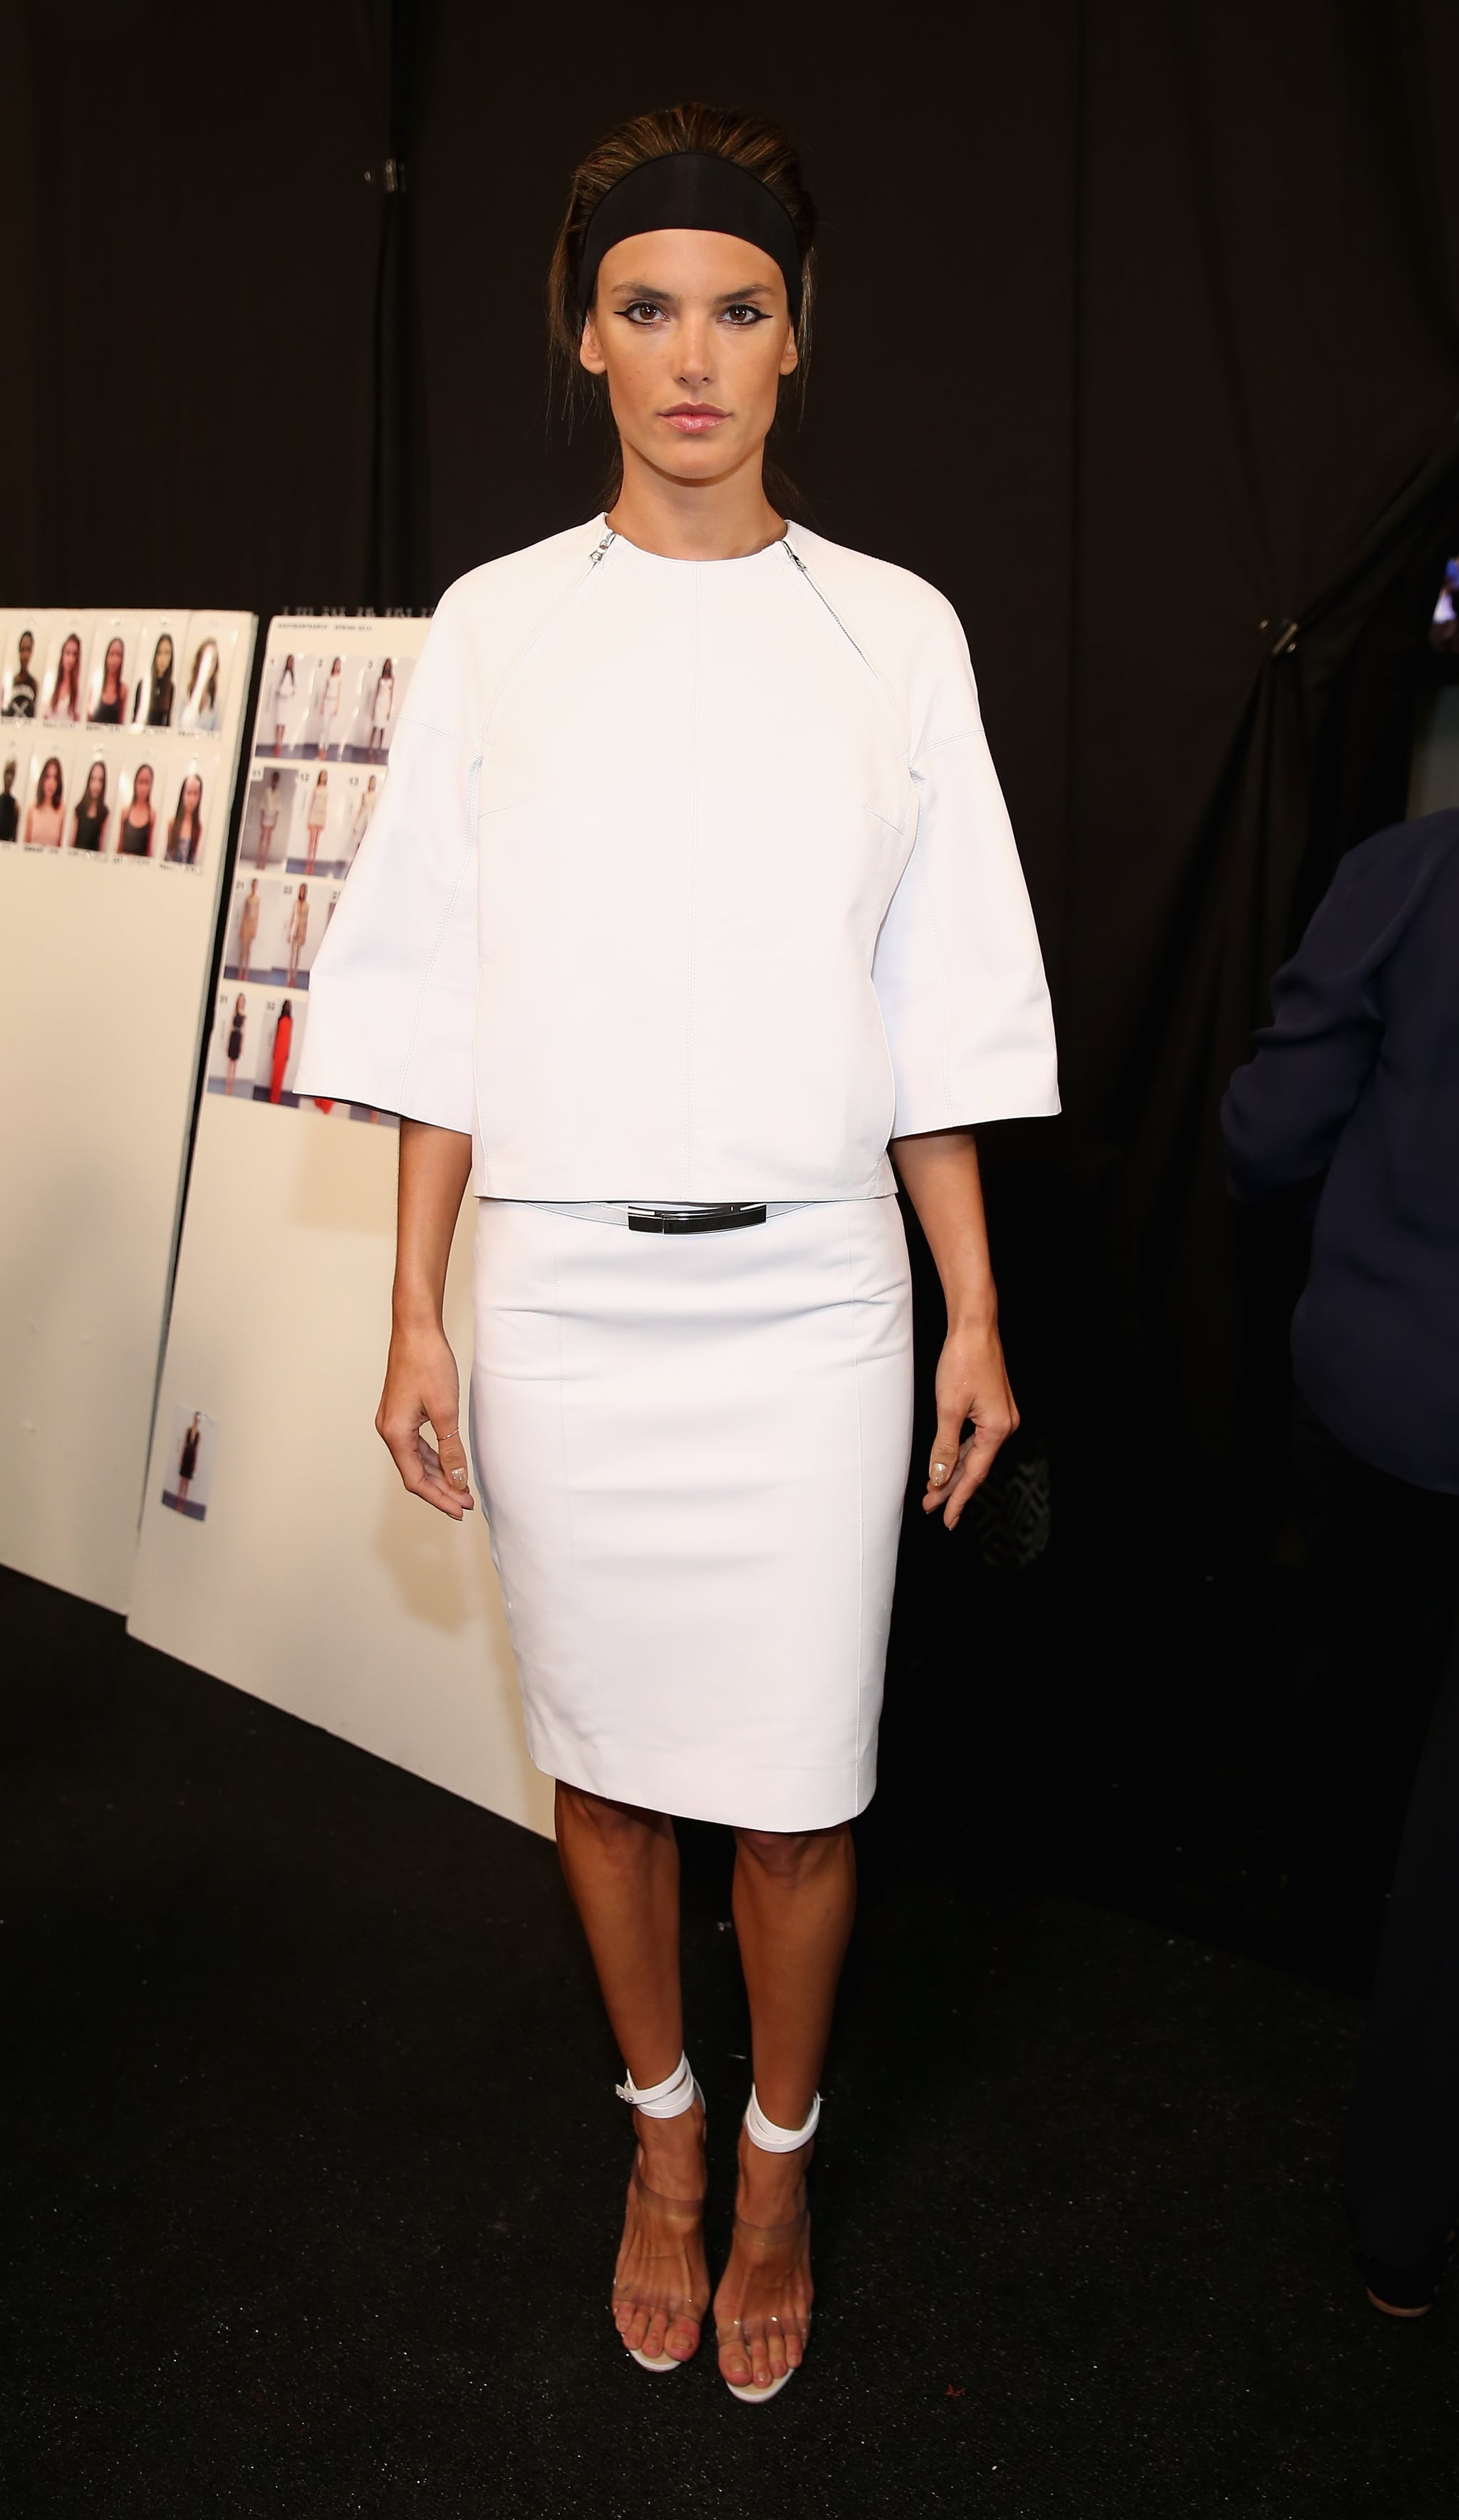 Alessandra Ambrosio posed for photos before hitting the runway for the Kaufmanfranco show on Monday.